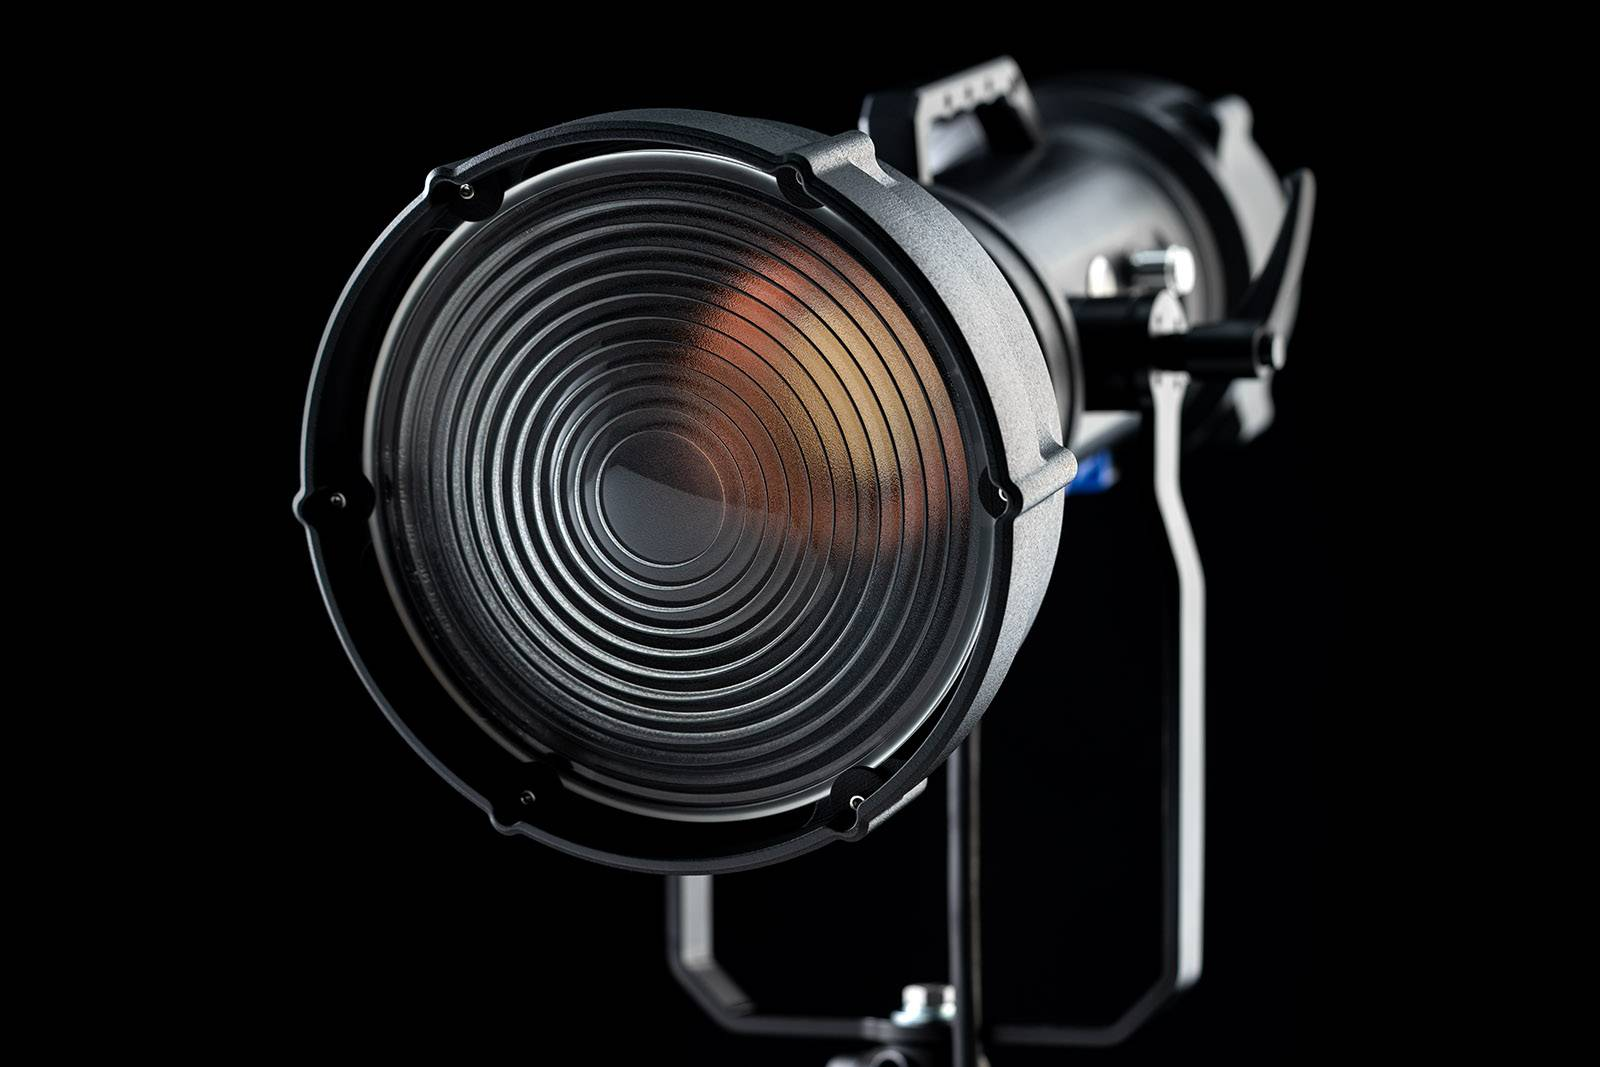 The Maxima 3 with the 200mm Borosilicate Glass Fresnel lens